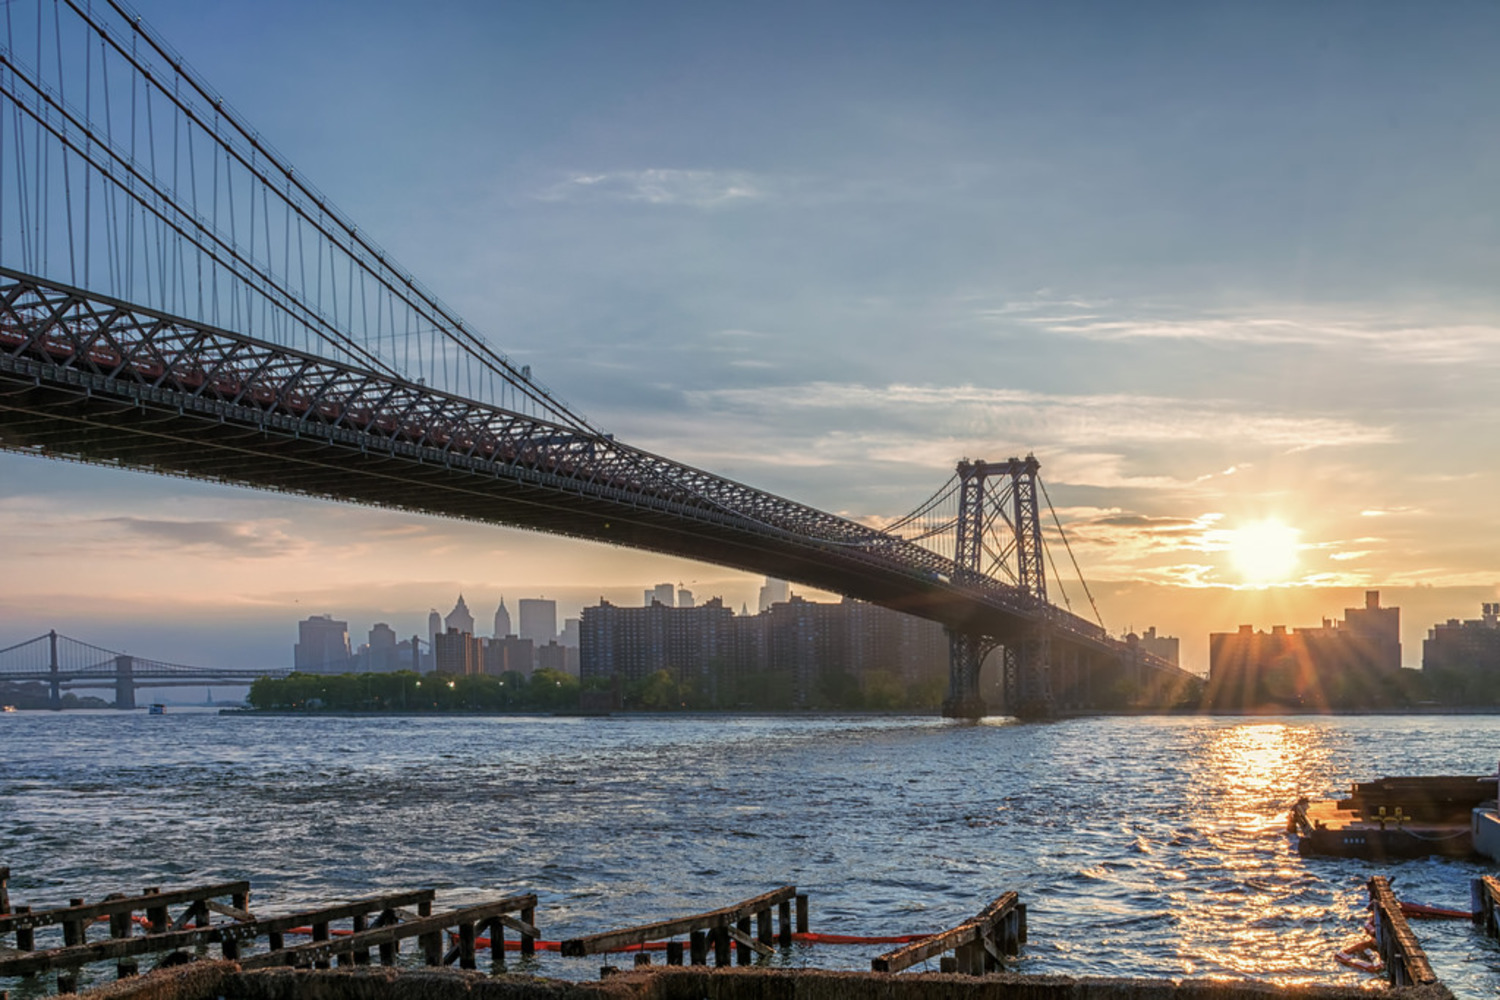 Lower Manhattan Bridges at Sunset